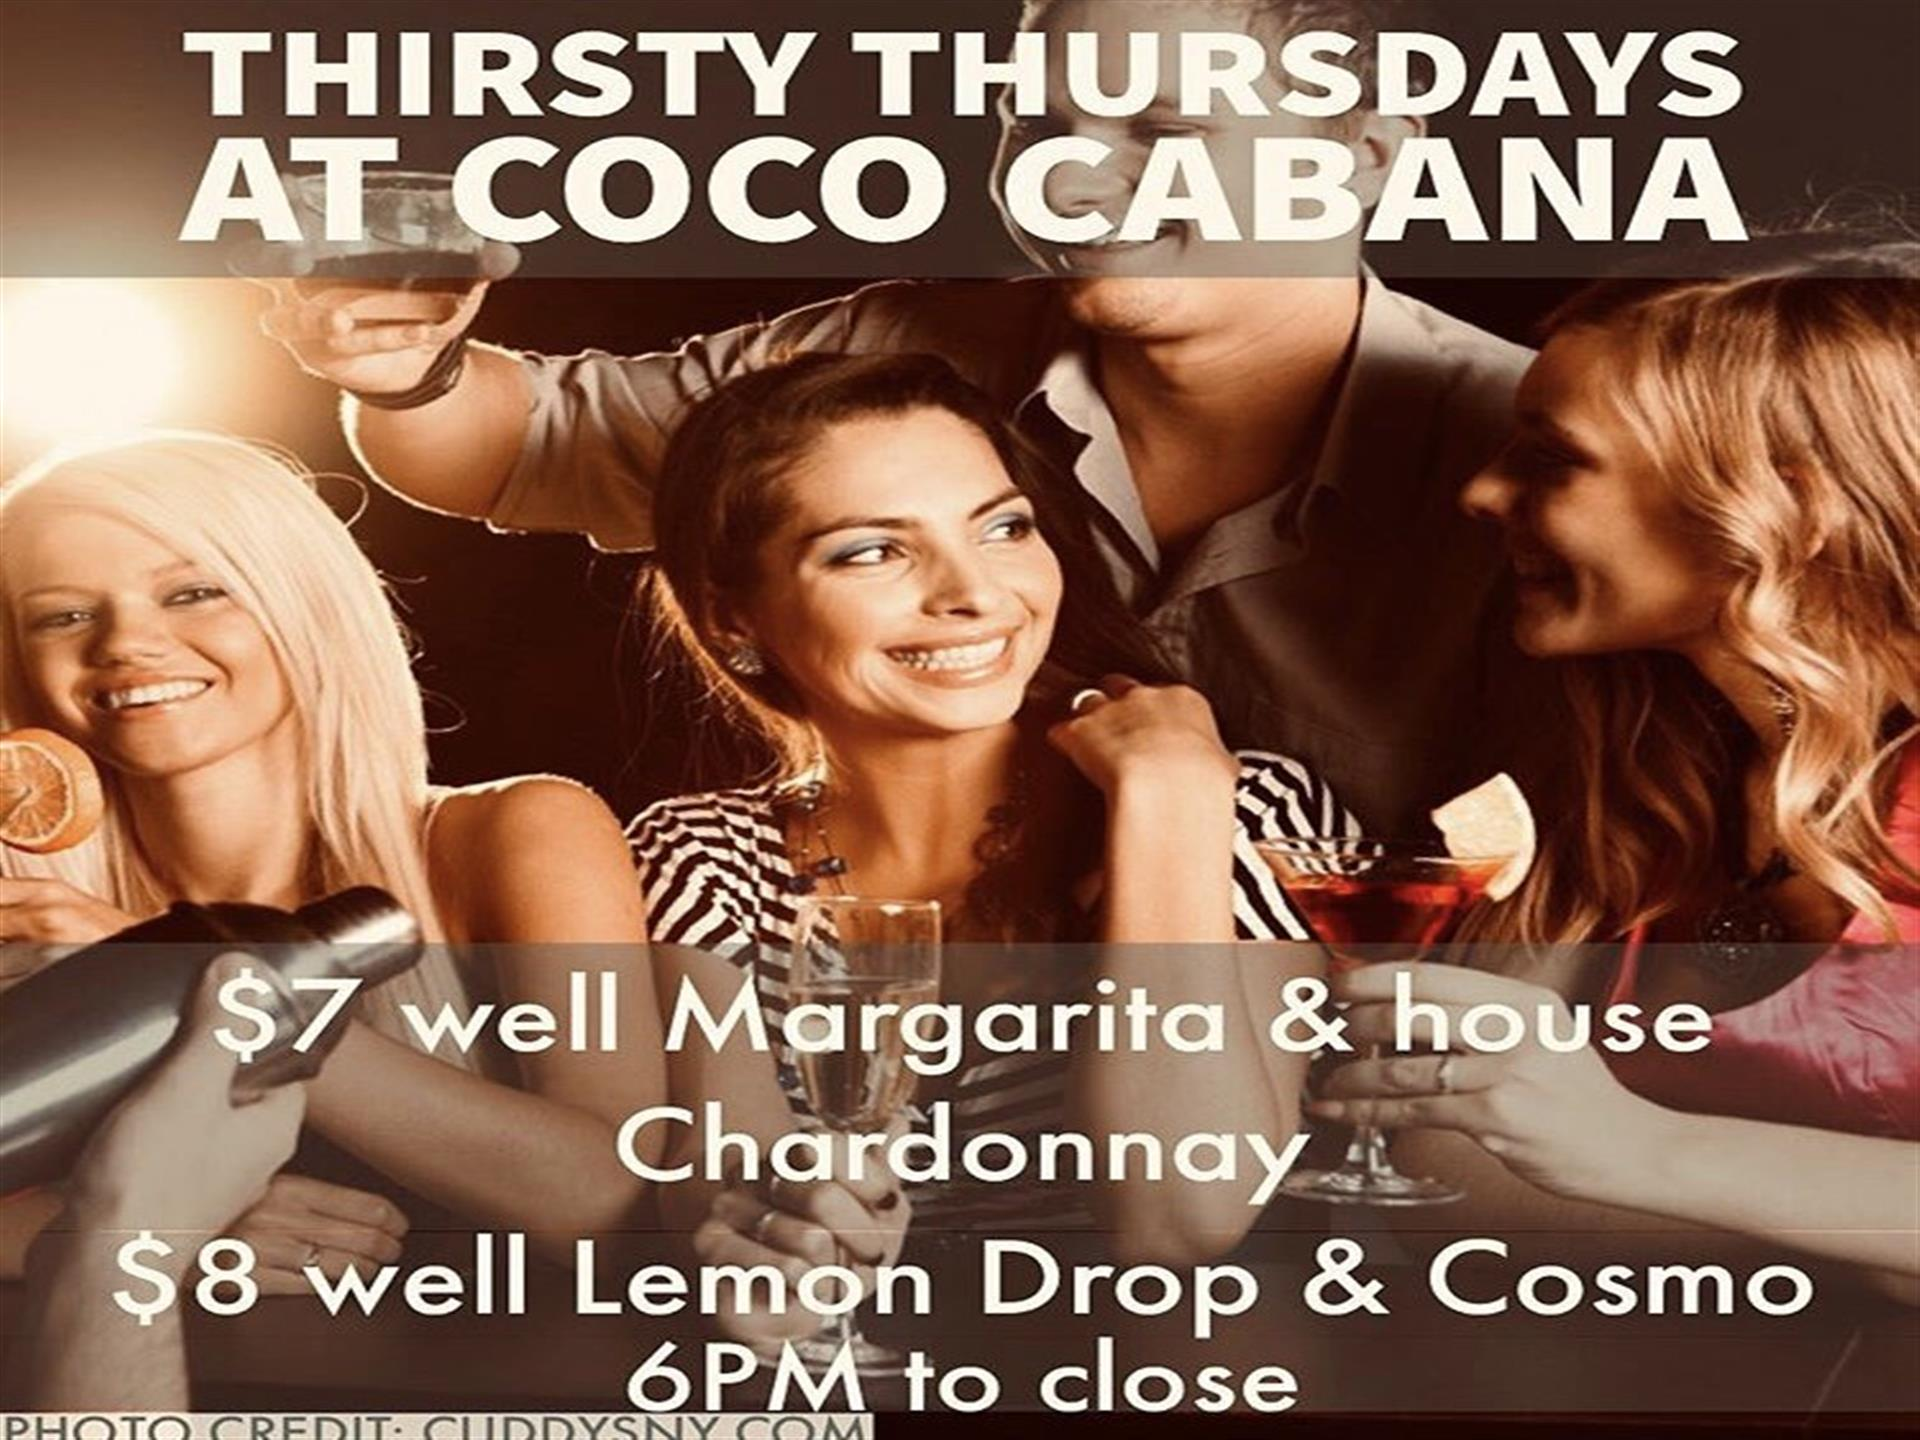 Thirsty Thursdays at Coco Cabana, $7 well margarita & house chardonnay, $8 well lemon drop & cosmo 6pm to close